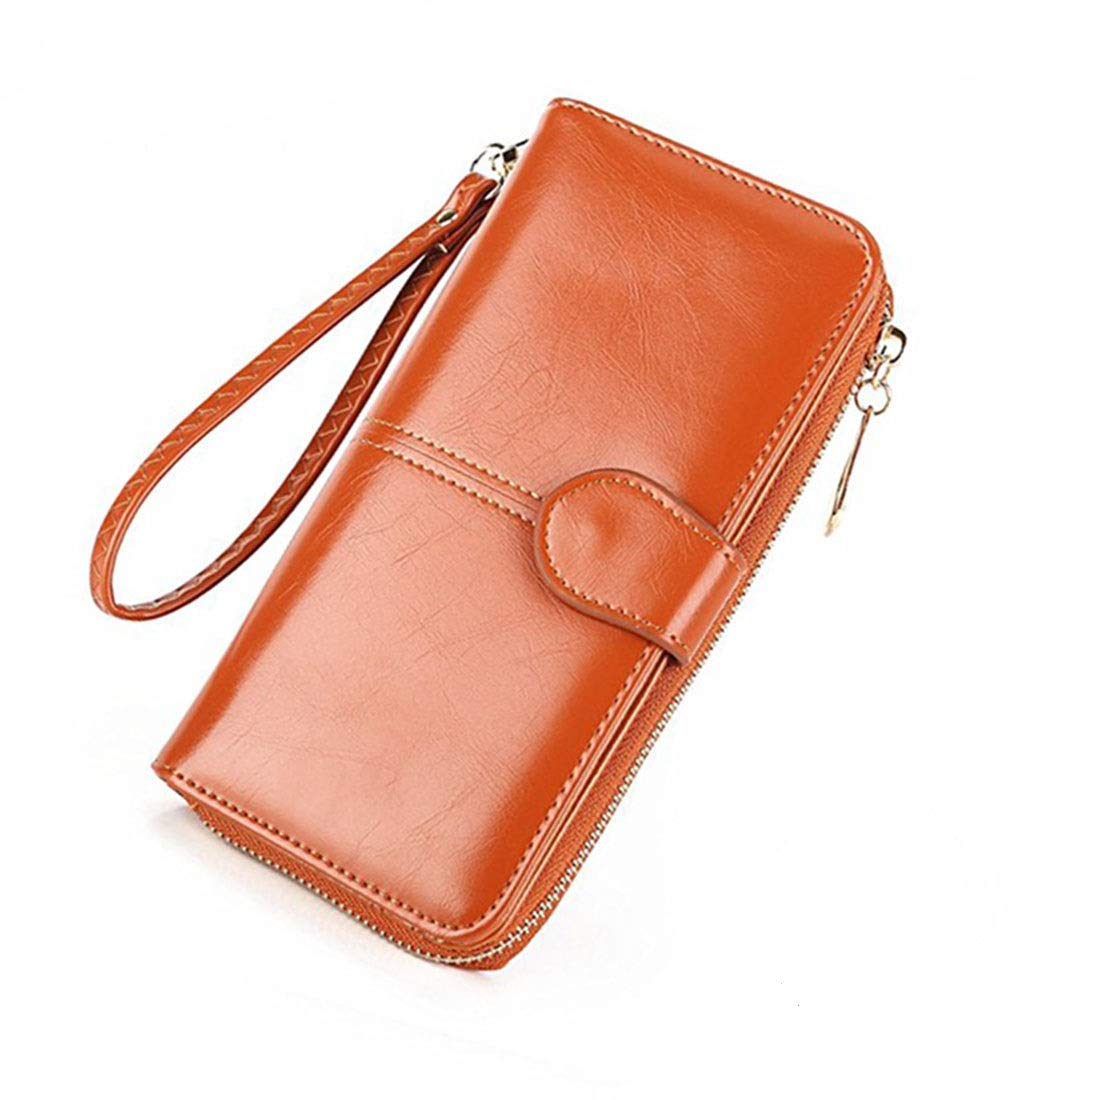 Women's Rfid Leather Wristlet Wallet Organizer Large Phone Checkbook Holder with Zipper Pocket